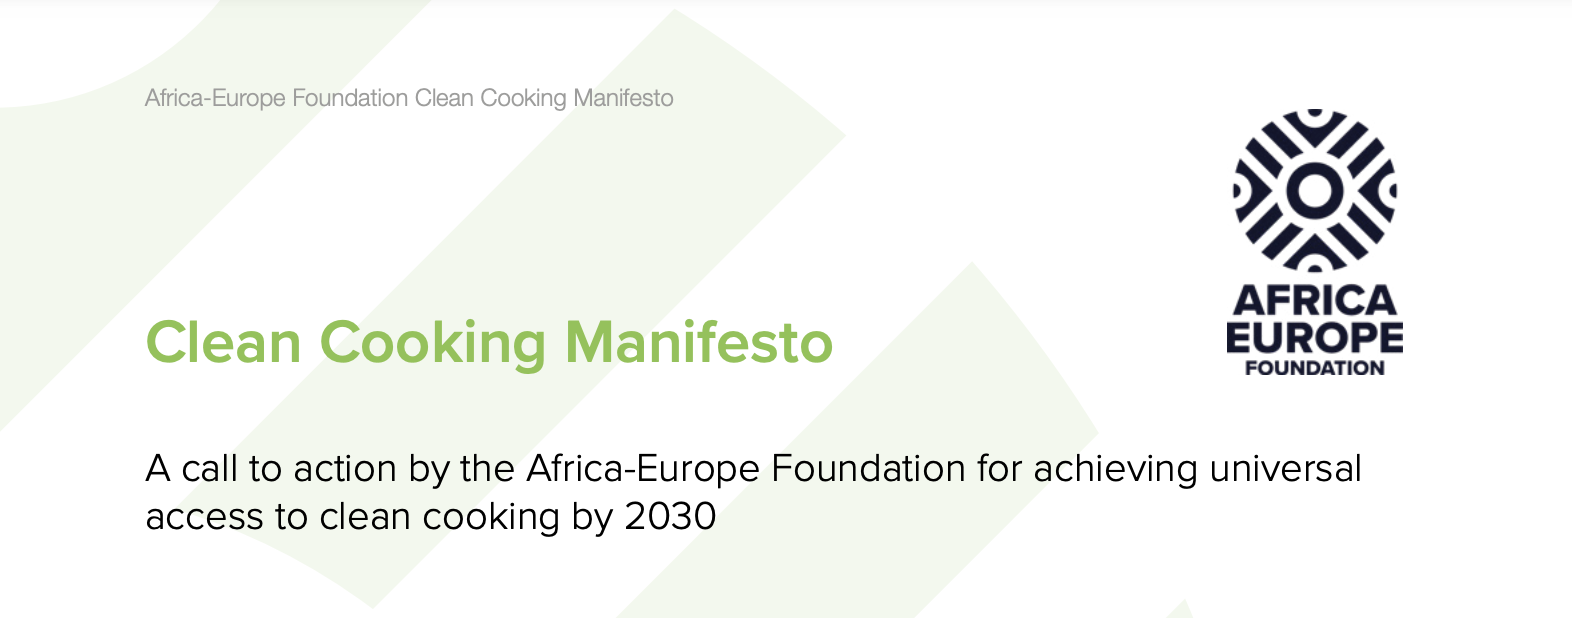 ENERGIA supports the Africa-Europe Foundation Clean Cooking Manifesto